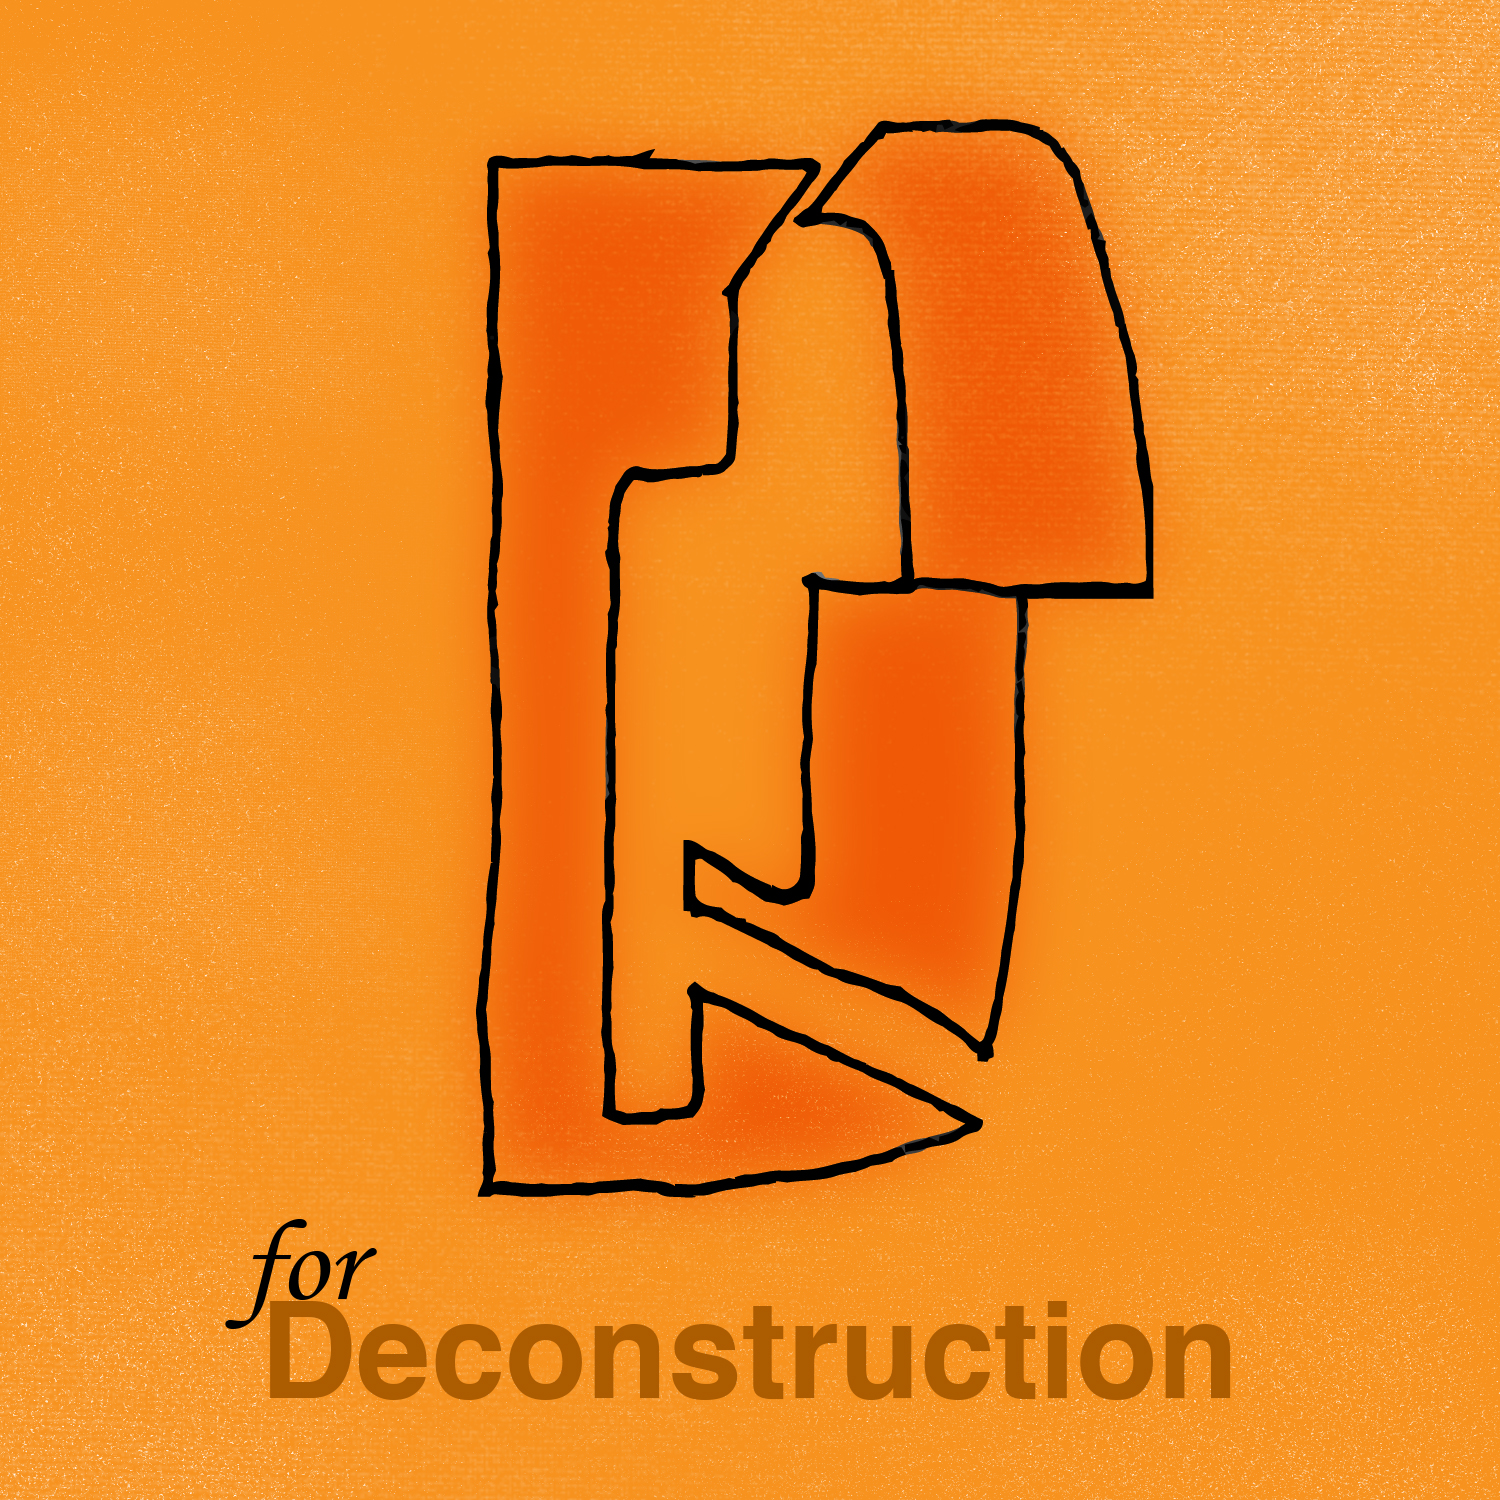 Sunday School D is for Deconstruct